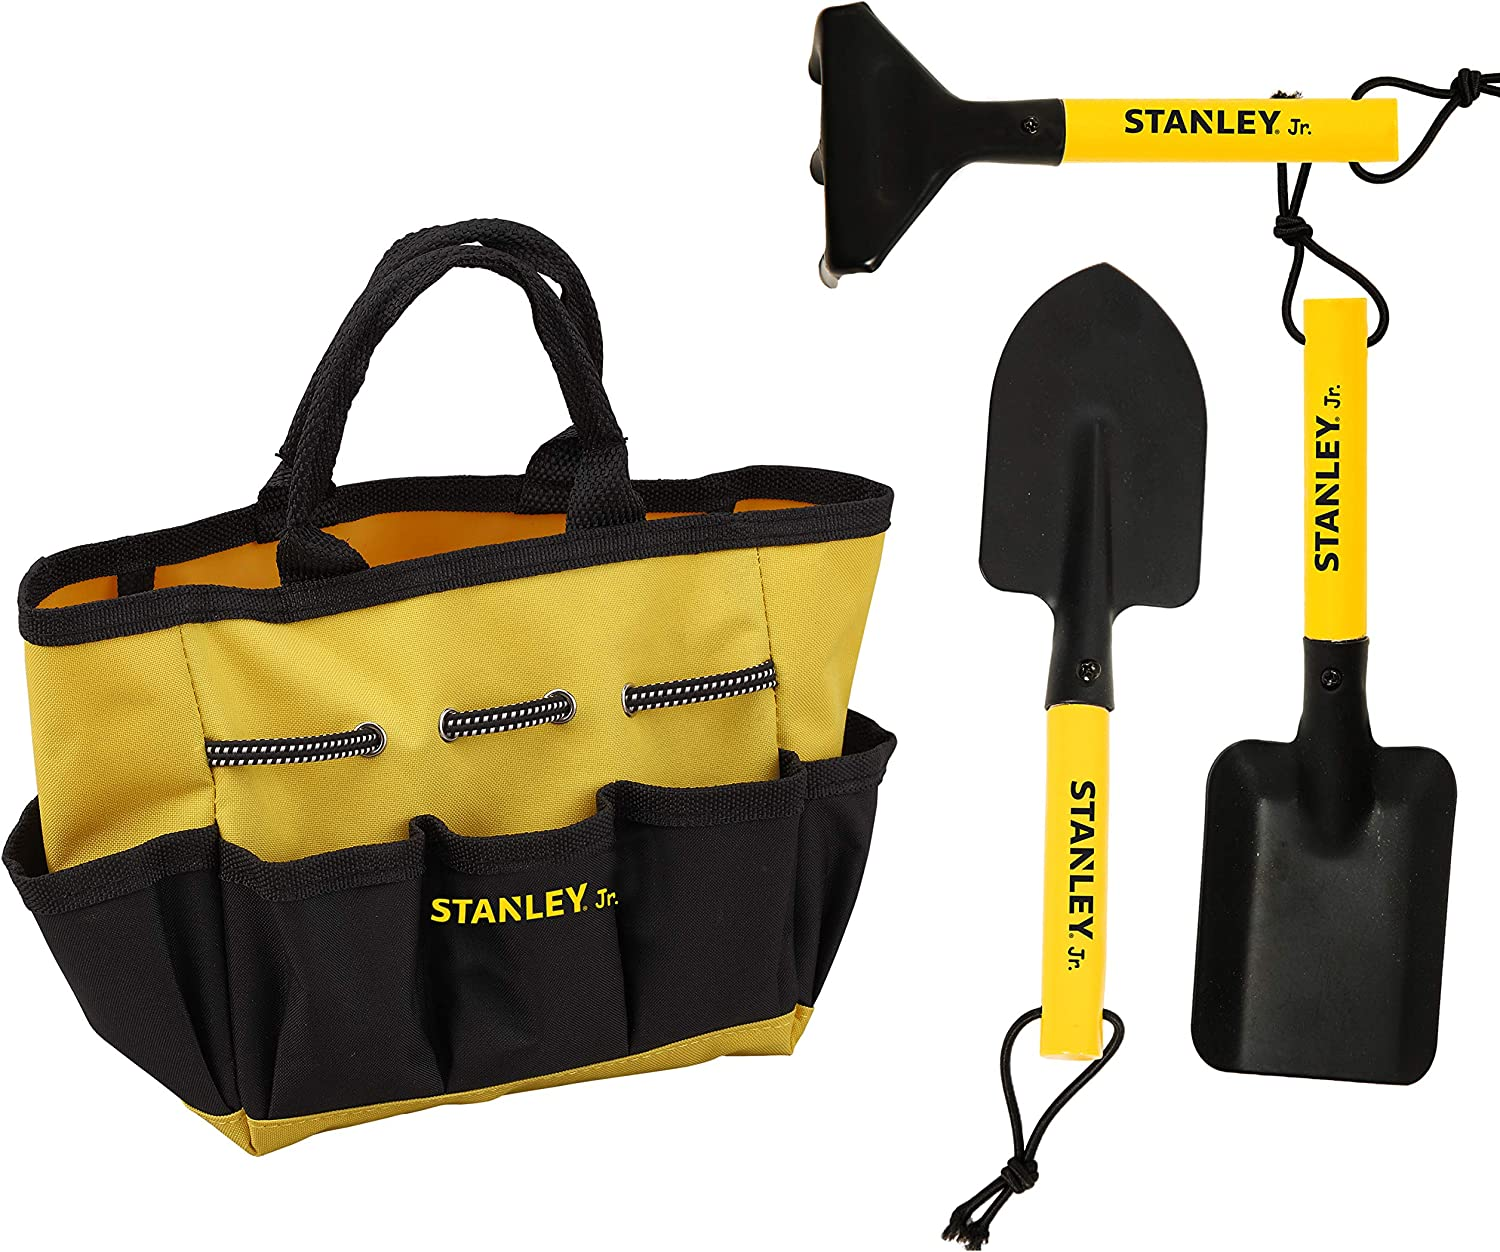 Stanley Jr - 4-Piece Garden Hand Tool Set with Bag for Kids